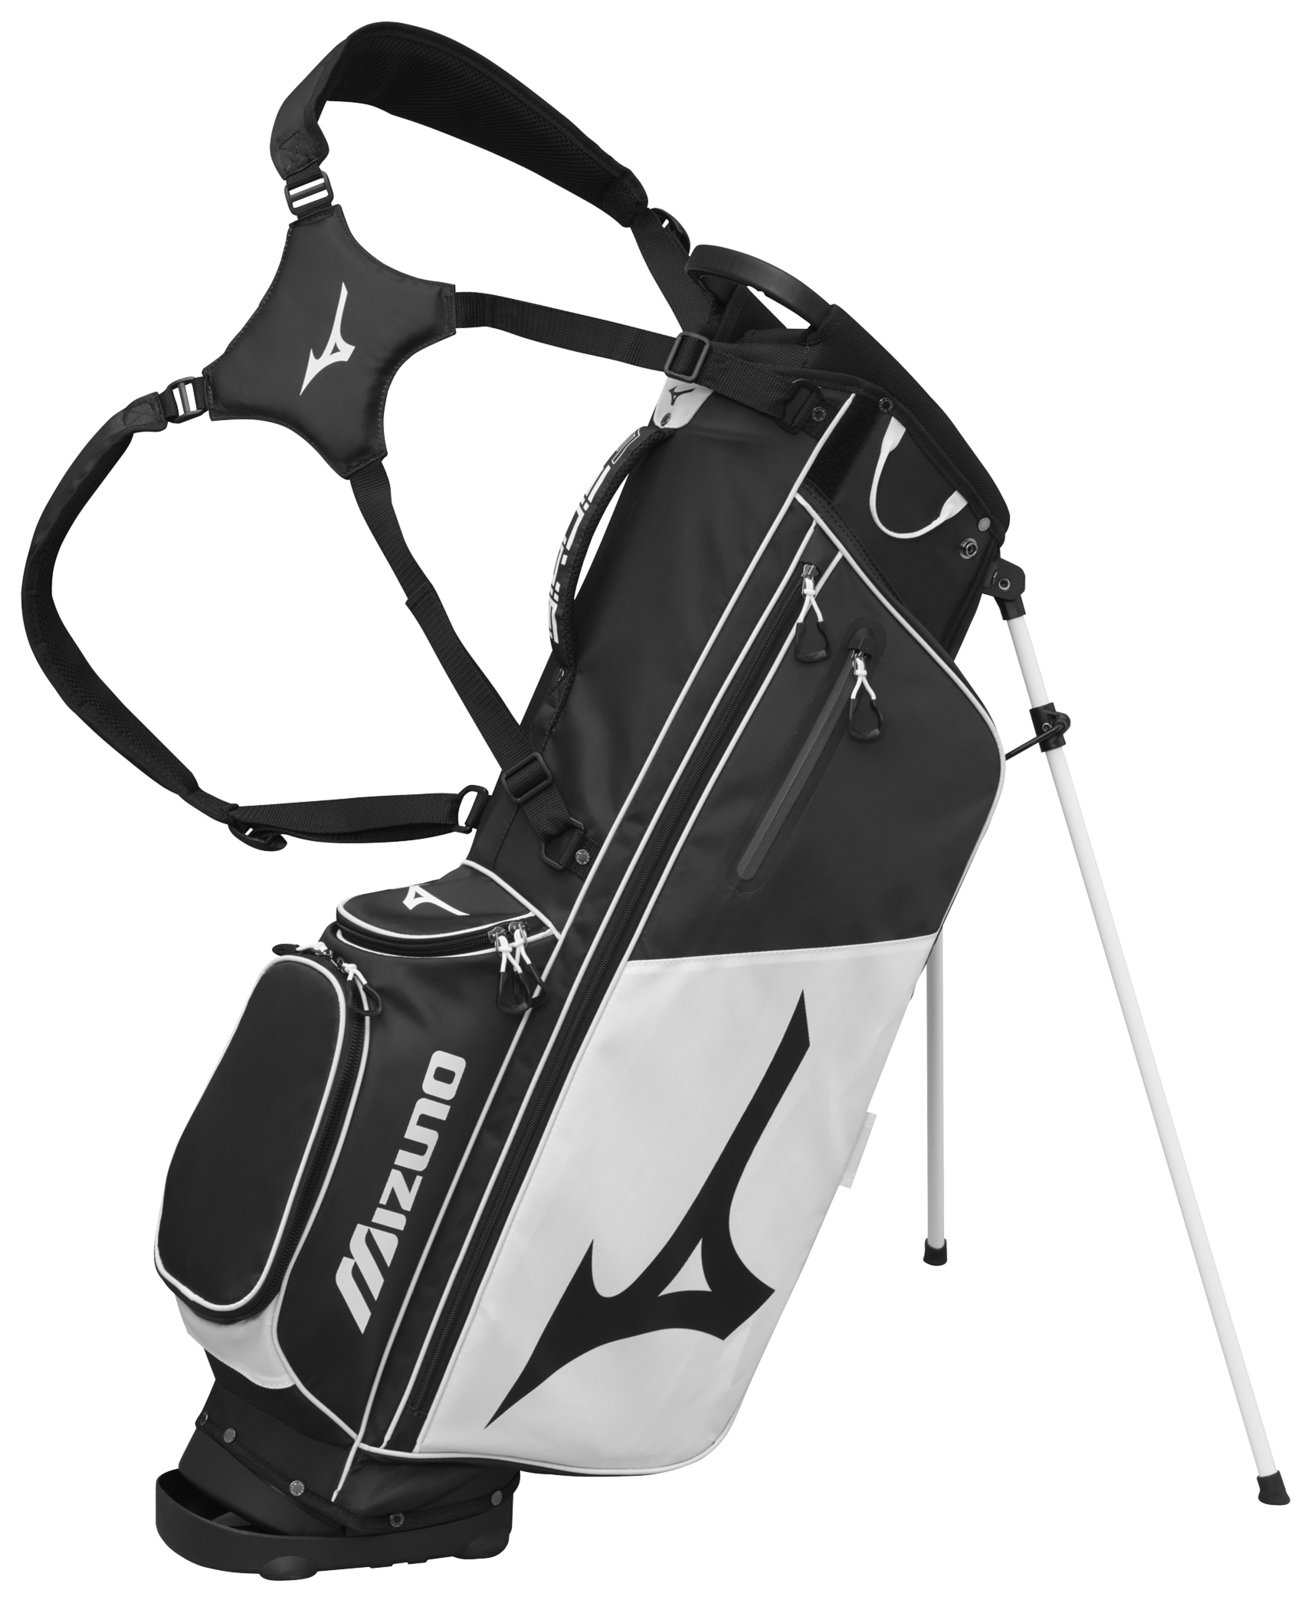 Mizuno 2018 BR-D3 Stand Golf Bag, black/White